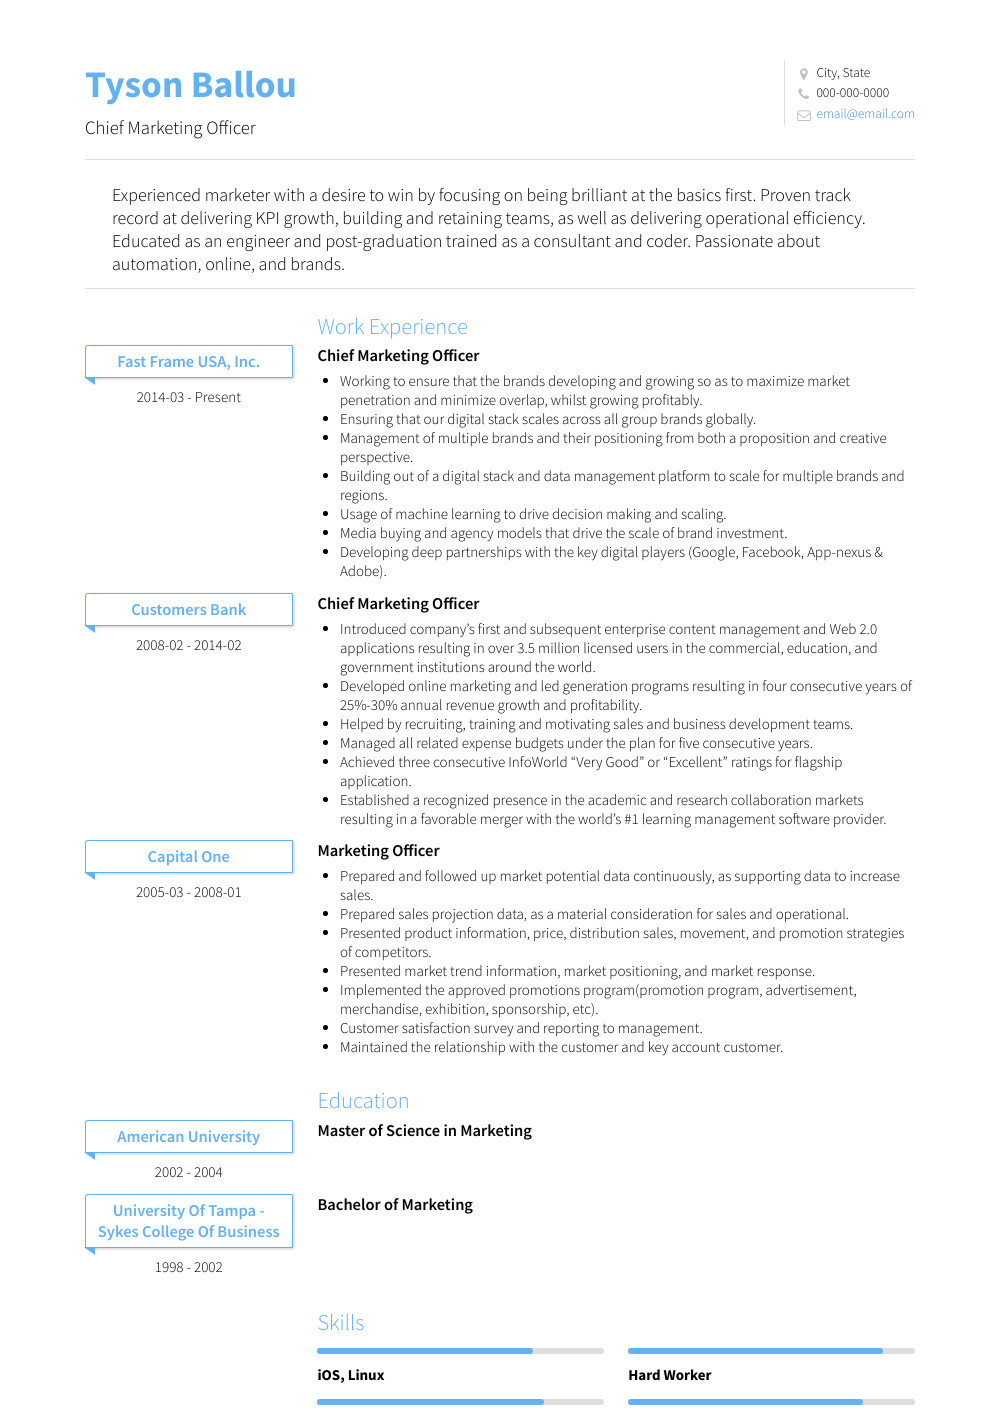 Chief Marketing Officer Resume Sample and Template